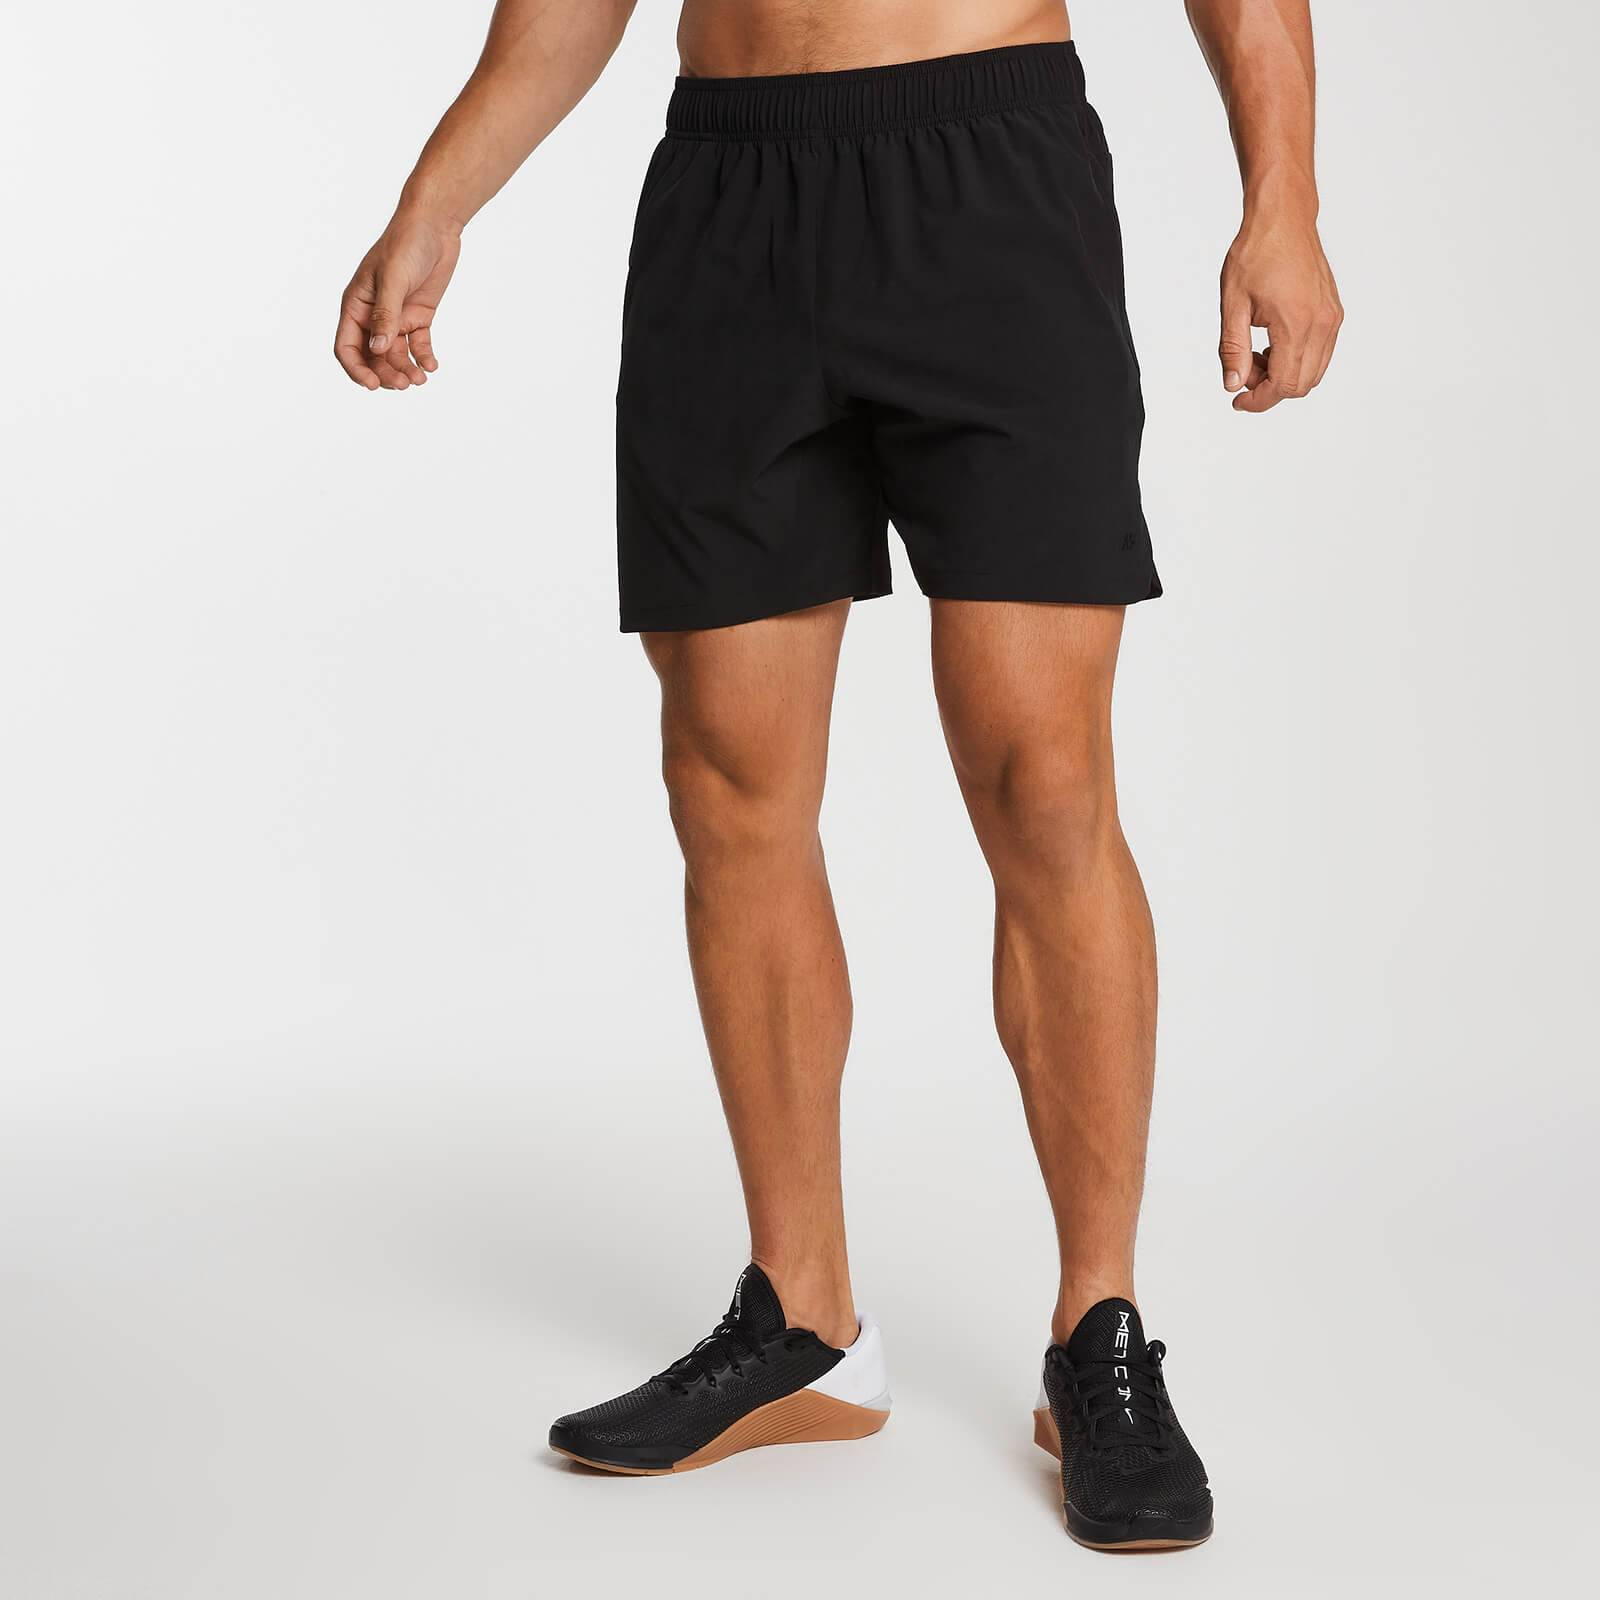 MP Essential Woven Training Shorts - Sort - Xs